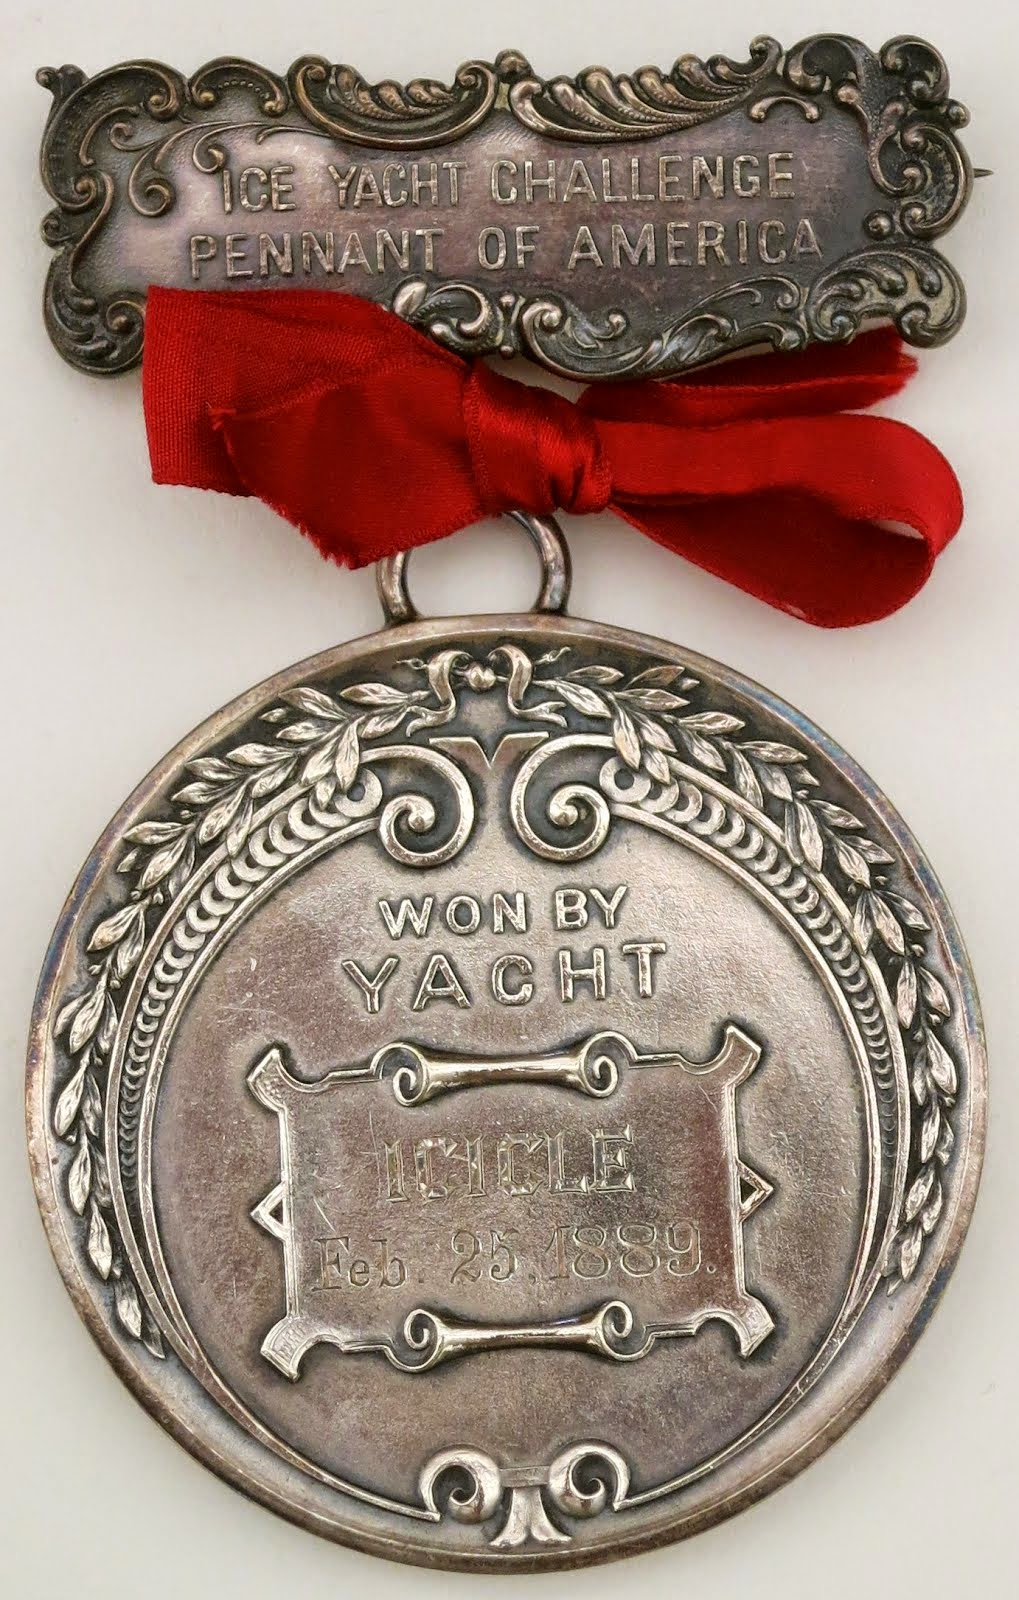 Ice Yacht Challenge Pennant Race medal 1889